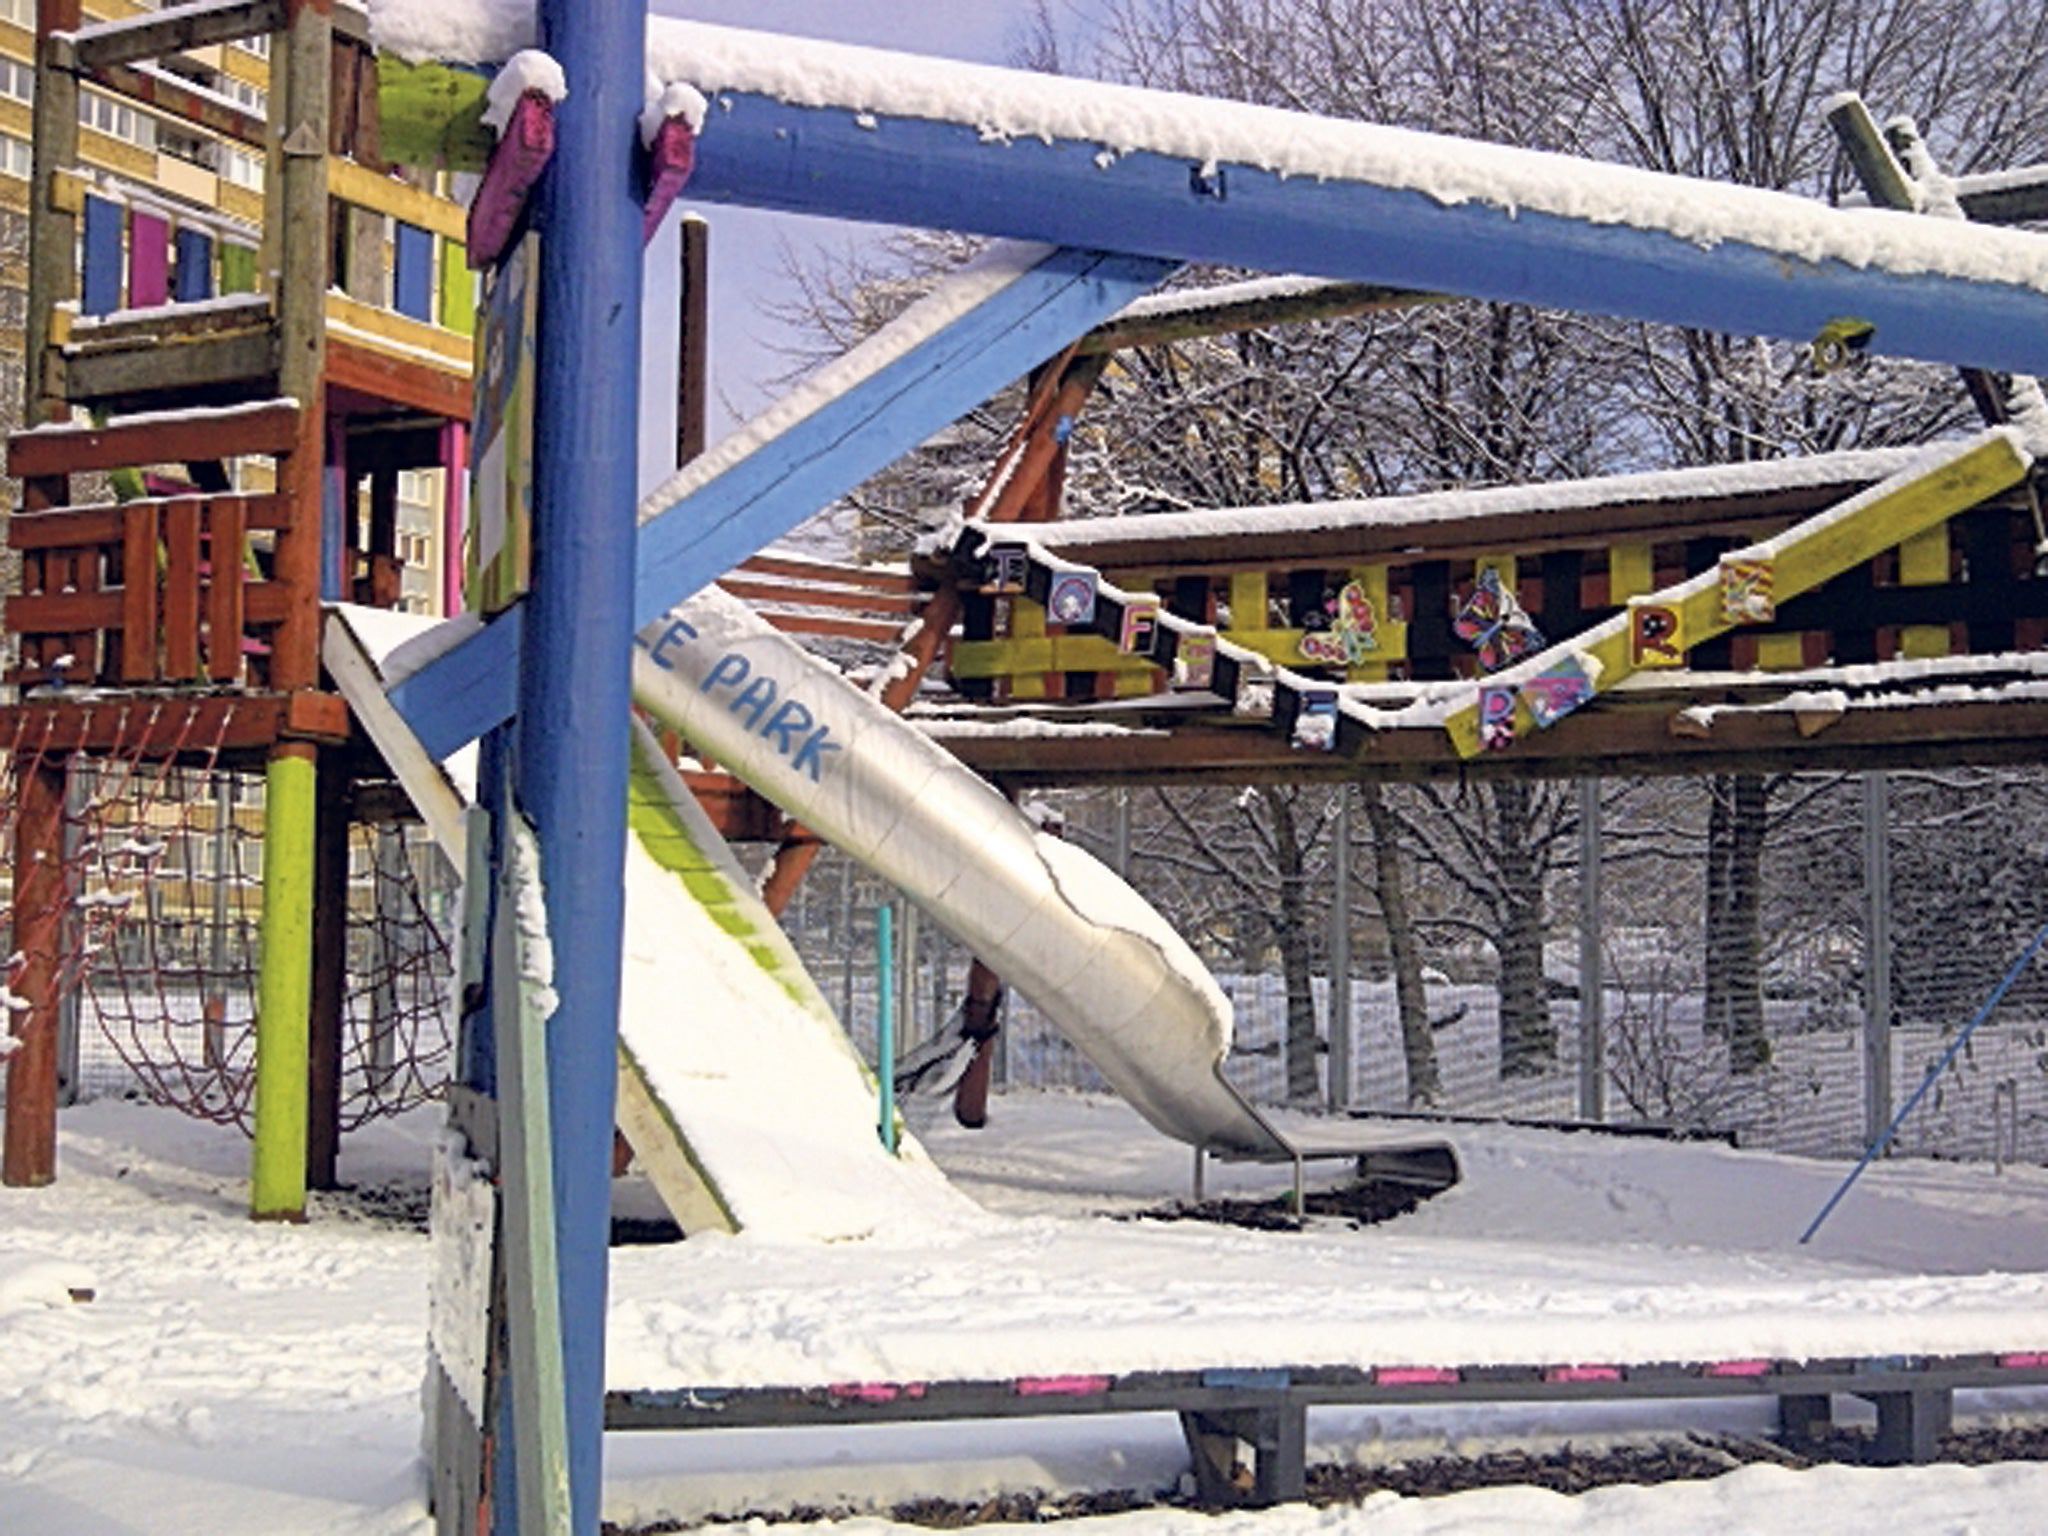 The Best Adventure Playgrounds The Independent - 15 of the worlds coolest playgrounds